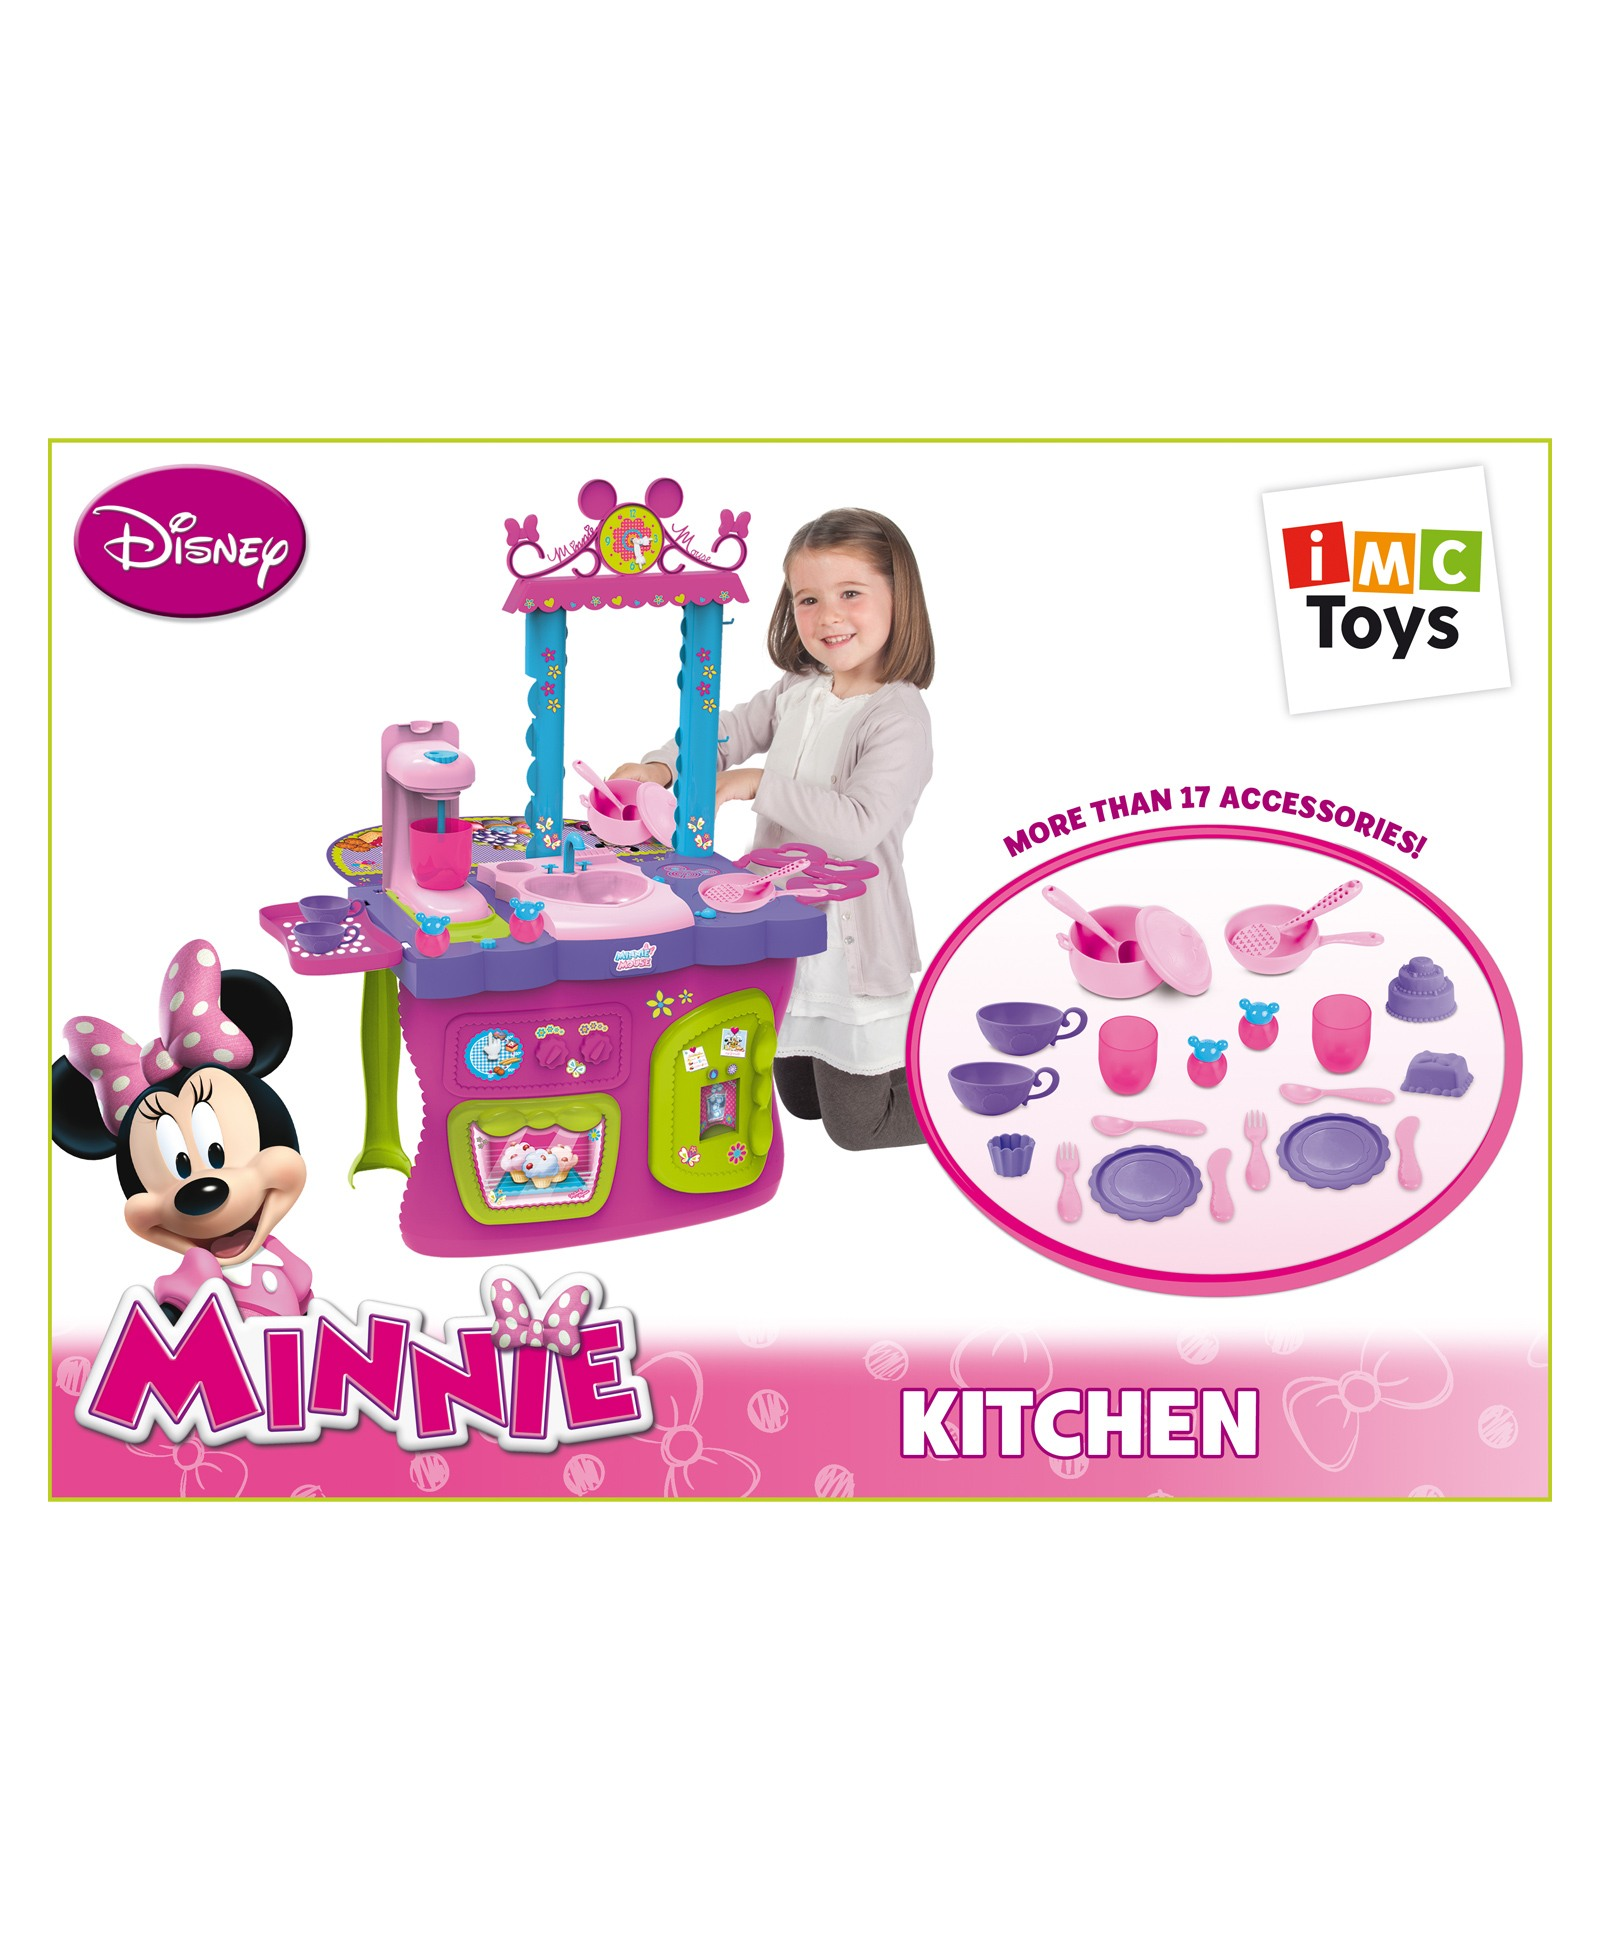 IMC Toys Minnie Kitchen - Pink